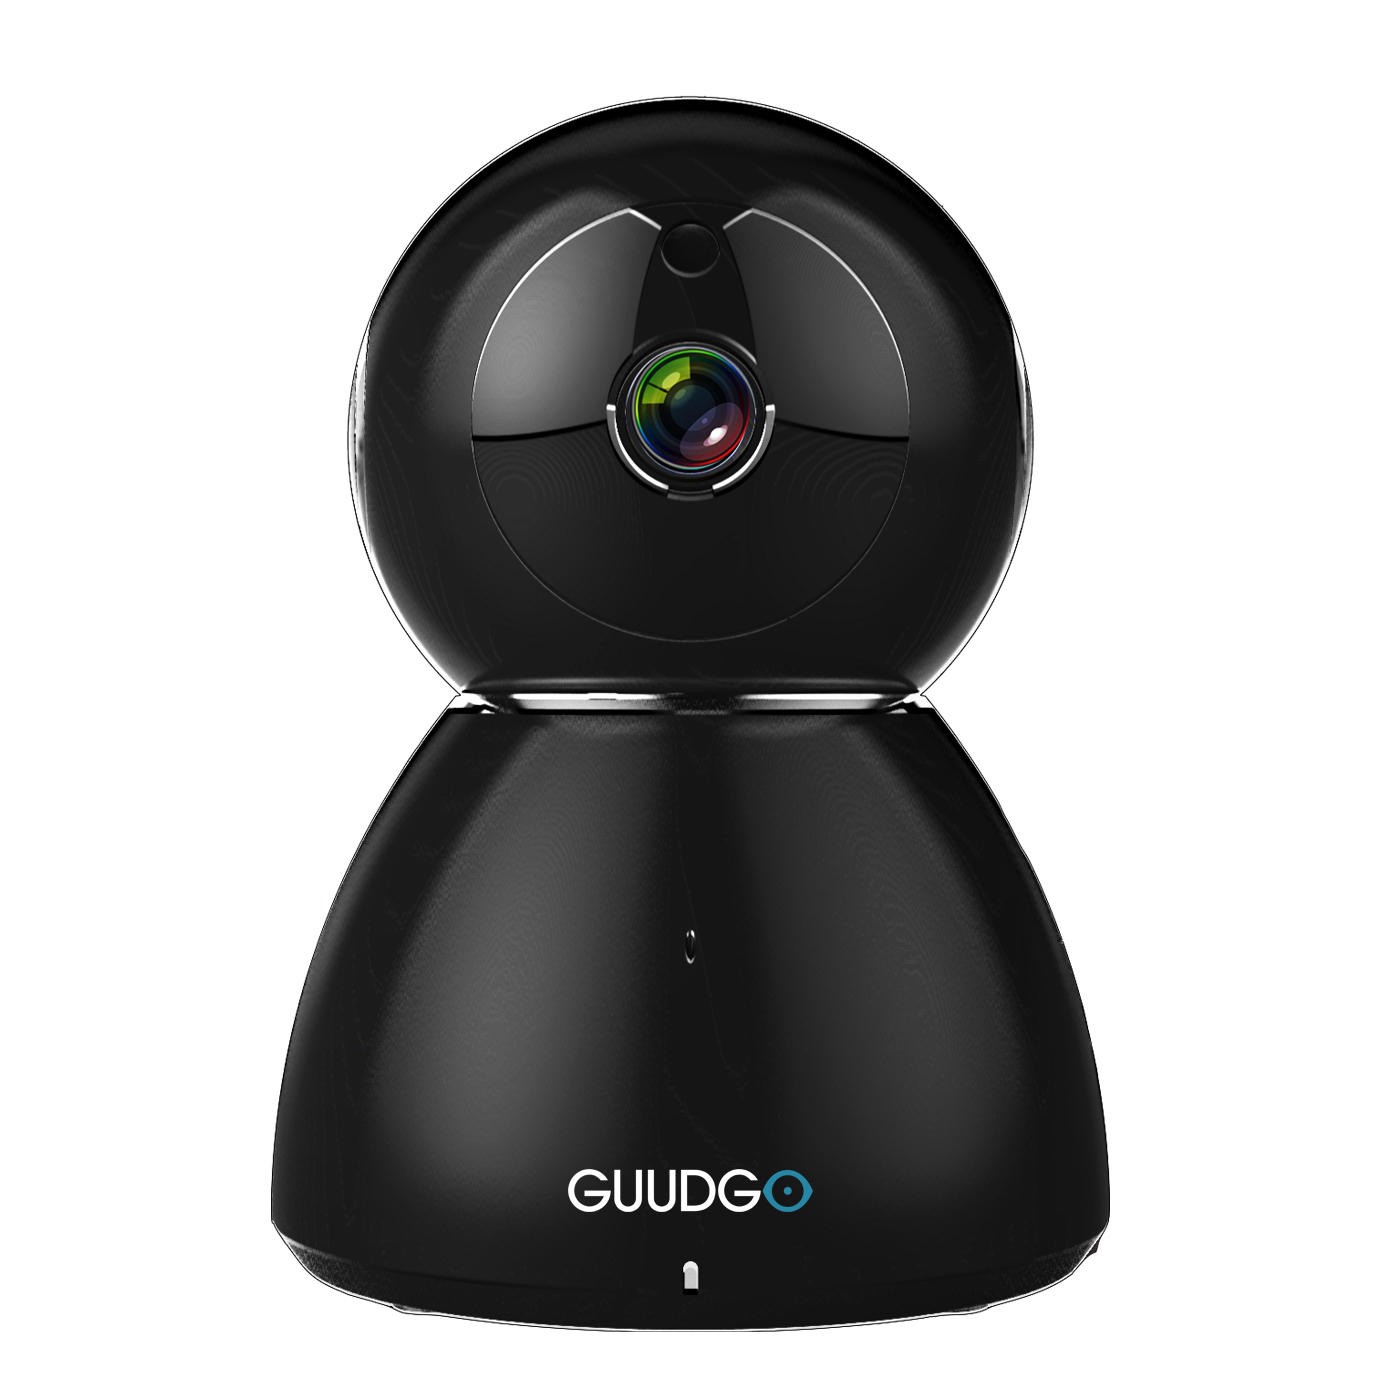 GUUDGO GD-SC03 Snowman 1080P Cloud WIFI IP Camera Black Pan&Tilt IR-Cut Night Vision Two-way Audio Motion Detection Alarm Camera Monitor Support Amazon-AWS[Amazon Web Services] Cloud Storage Service